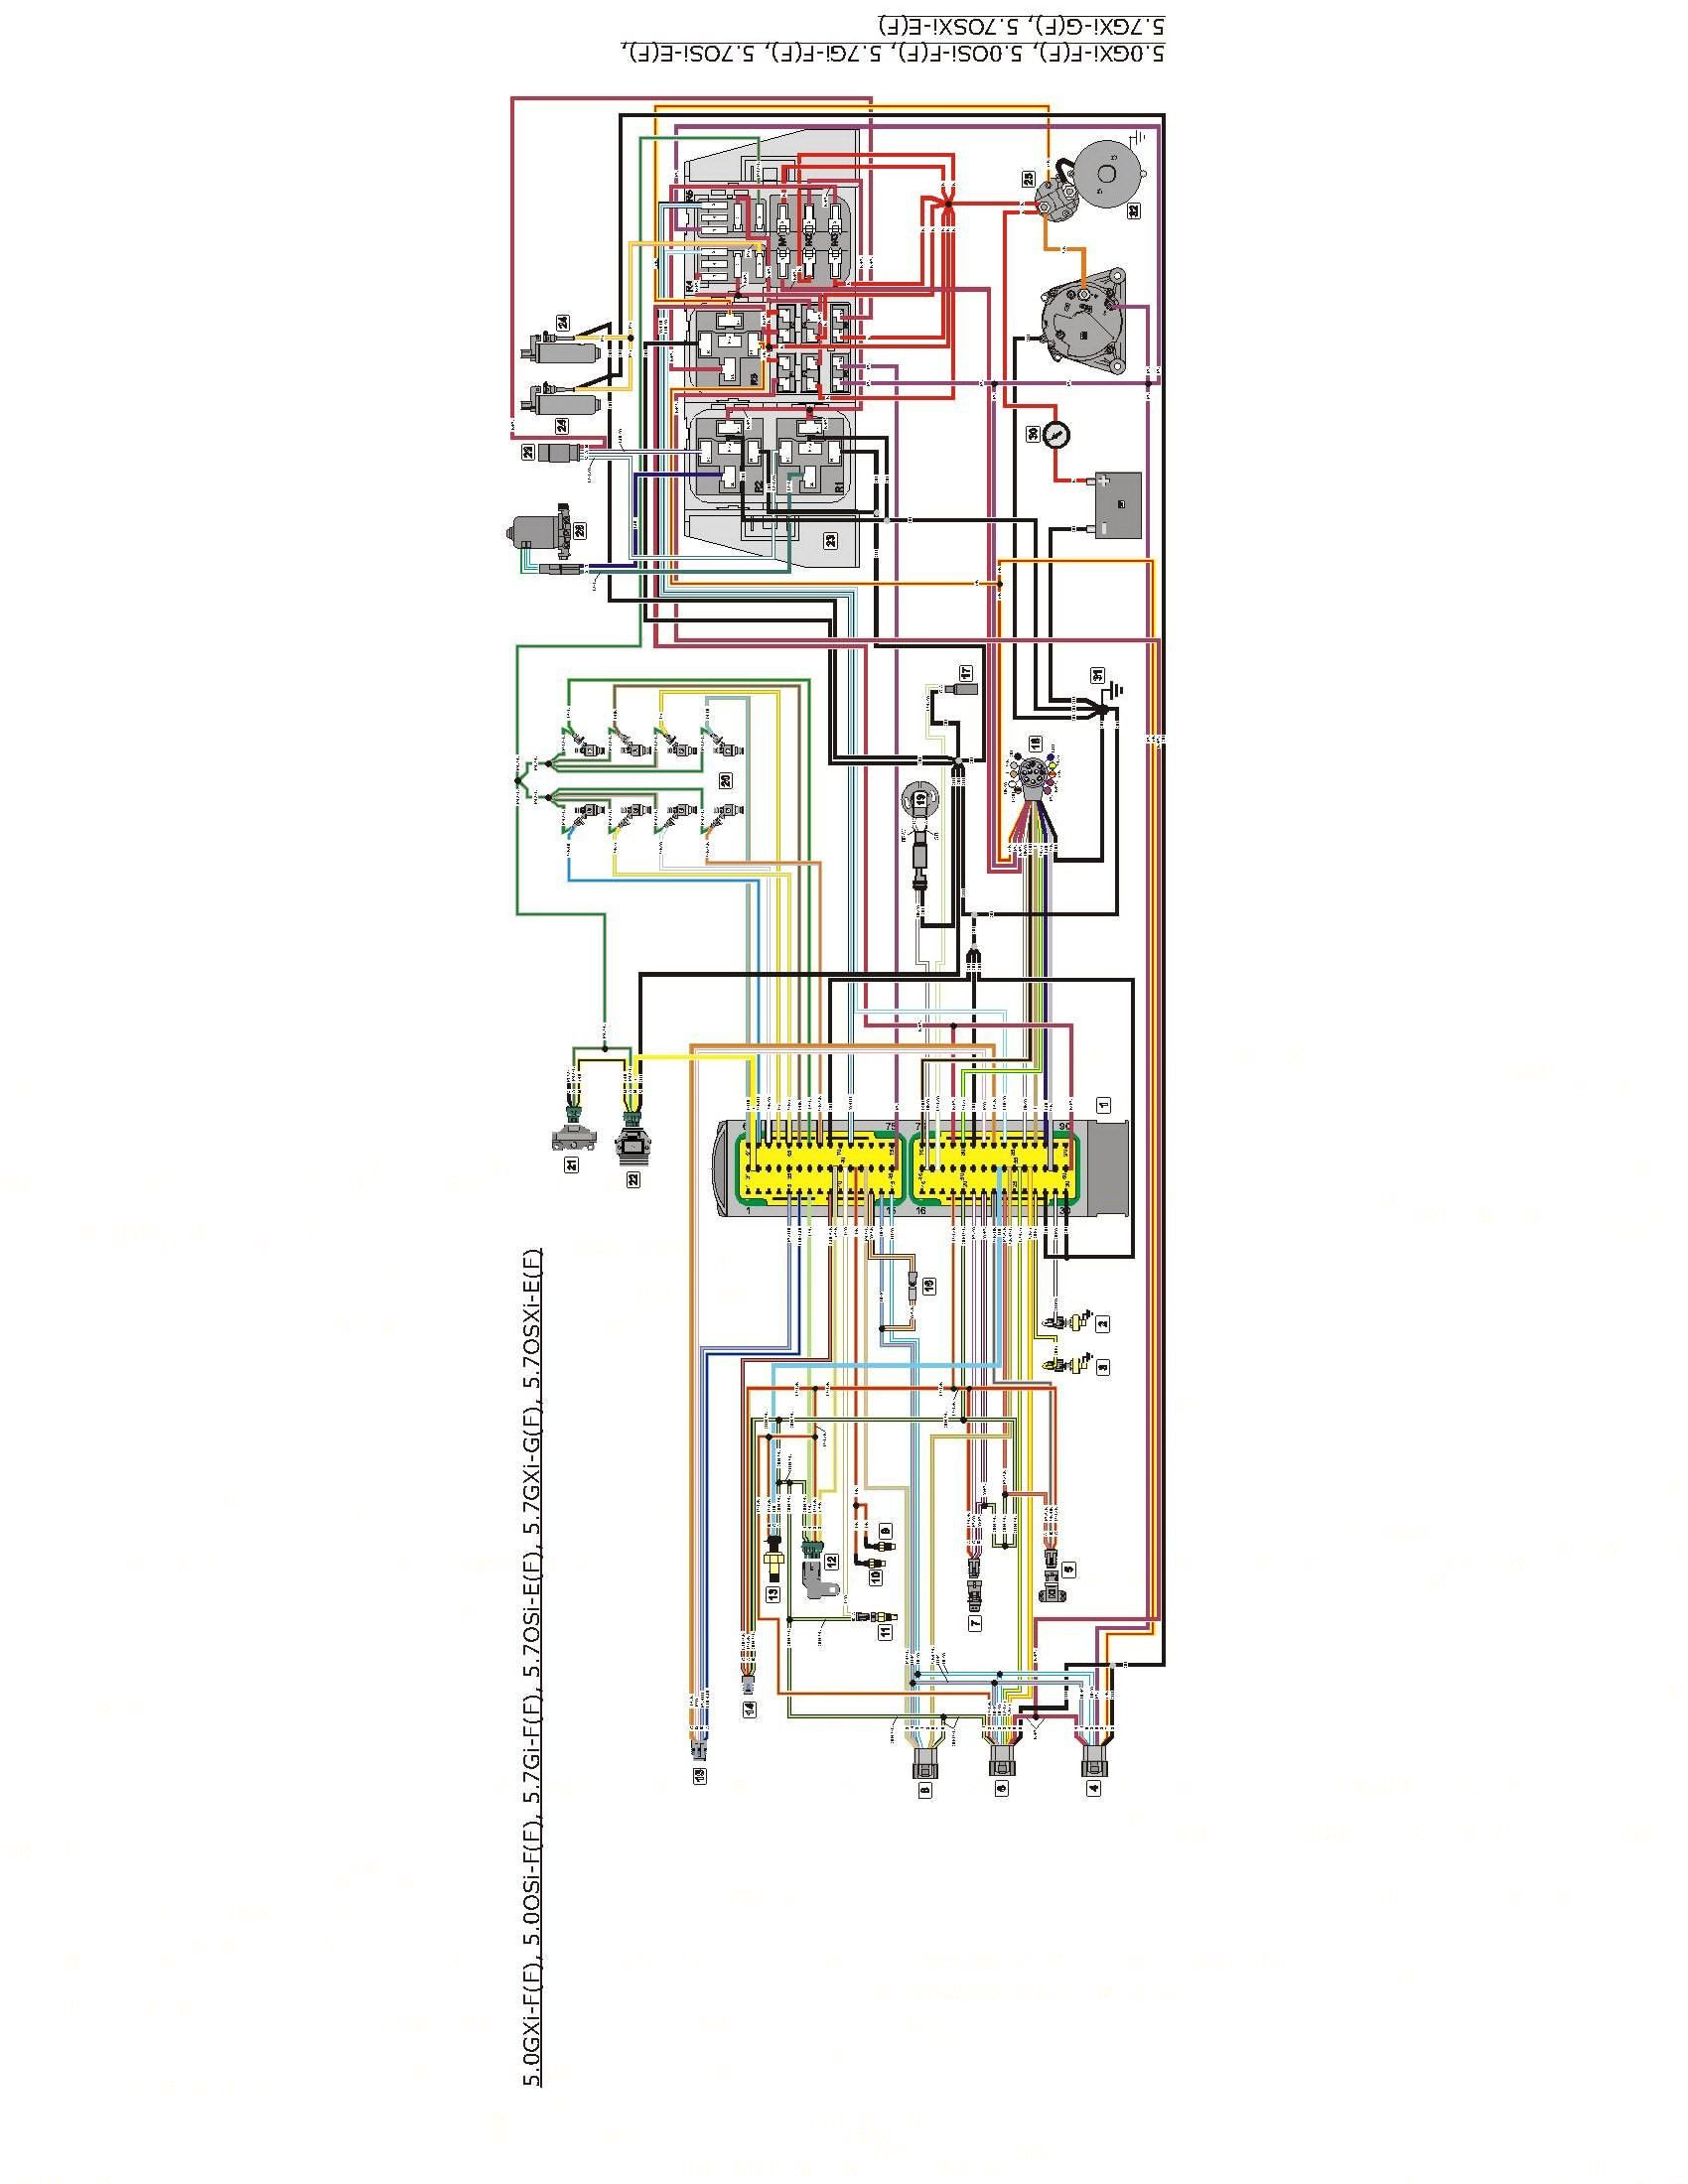 Volvo Trim Wiring Diagram Schemes 1998 Mcneilus Mercury Outboard Power Lovely For Rh Pinterest Com Penta 280 Sx